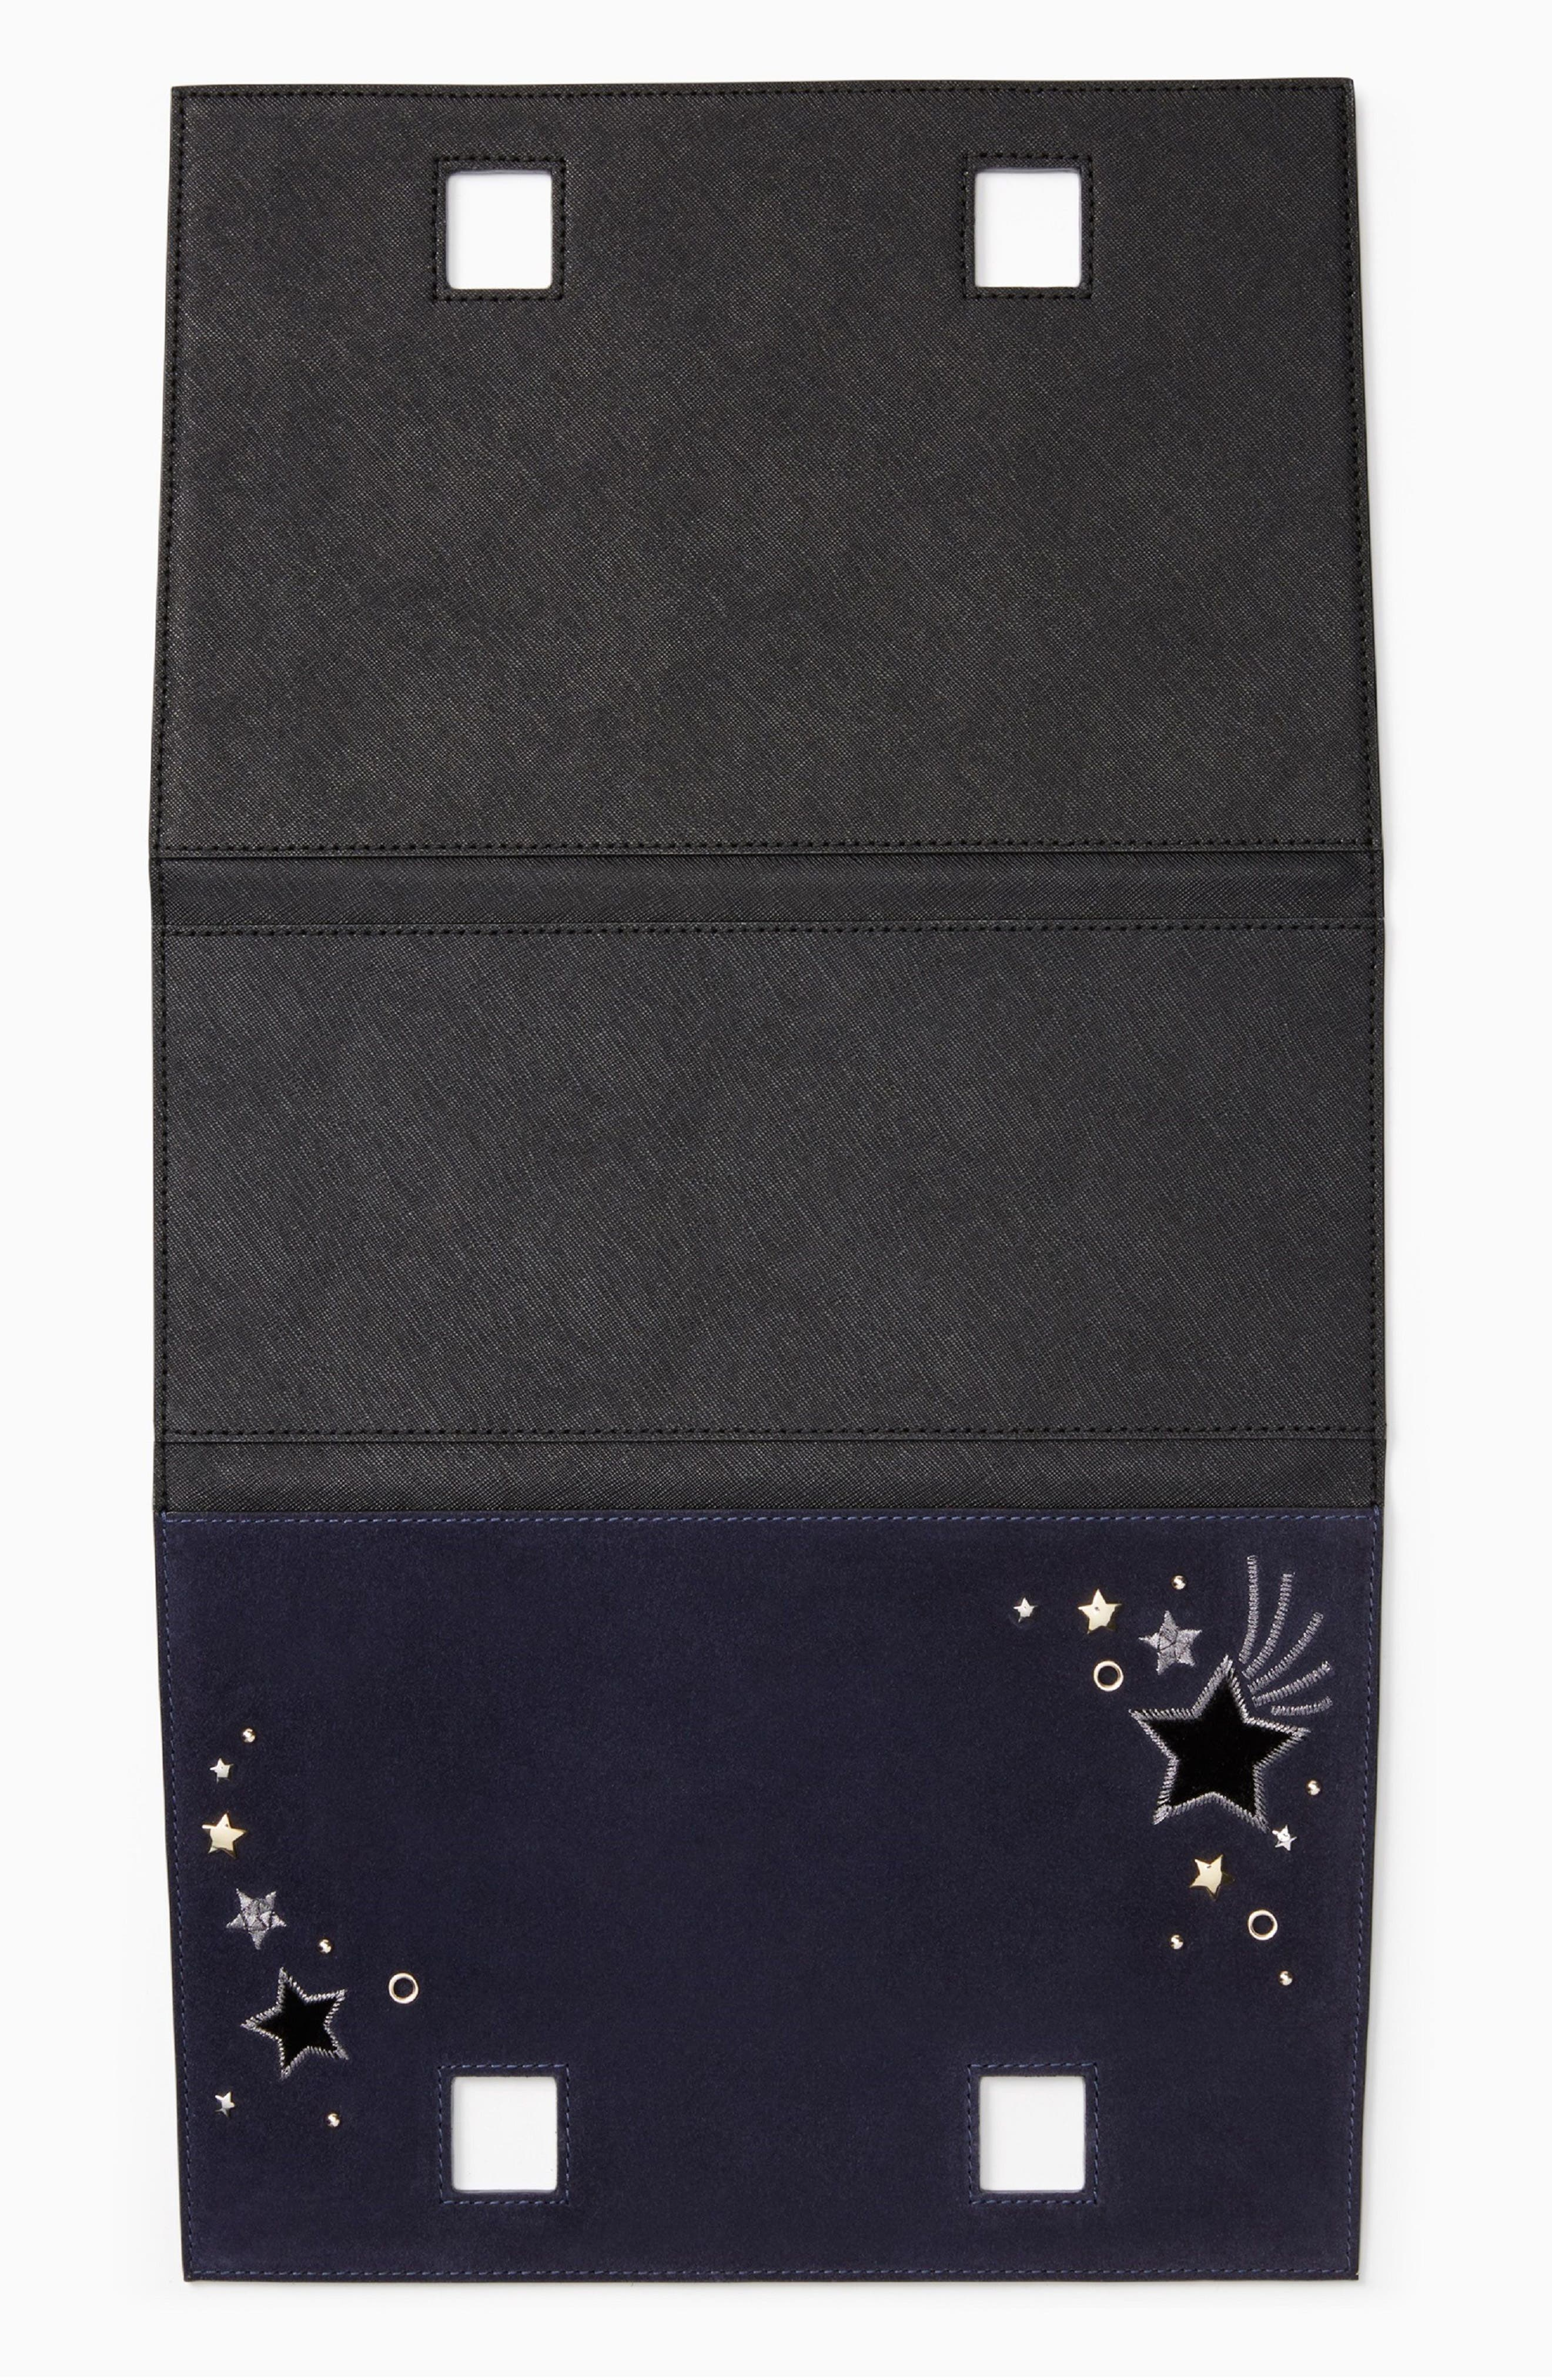 make it mine star embellished leather snap-on accent flap,                             Alternate thumbnail 2, color,                             400